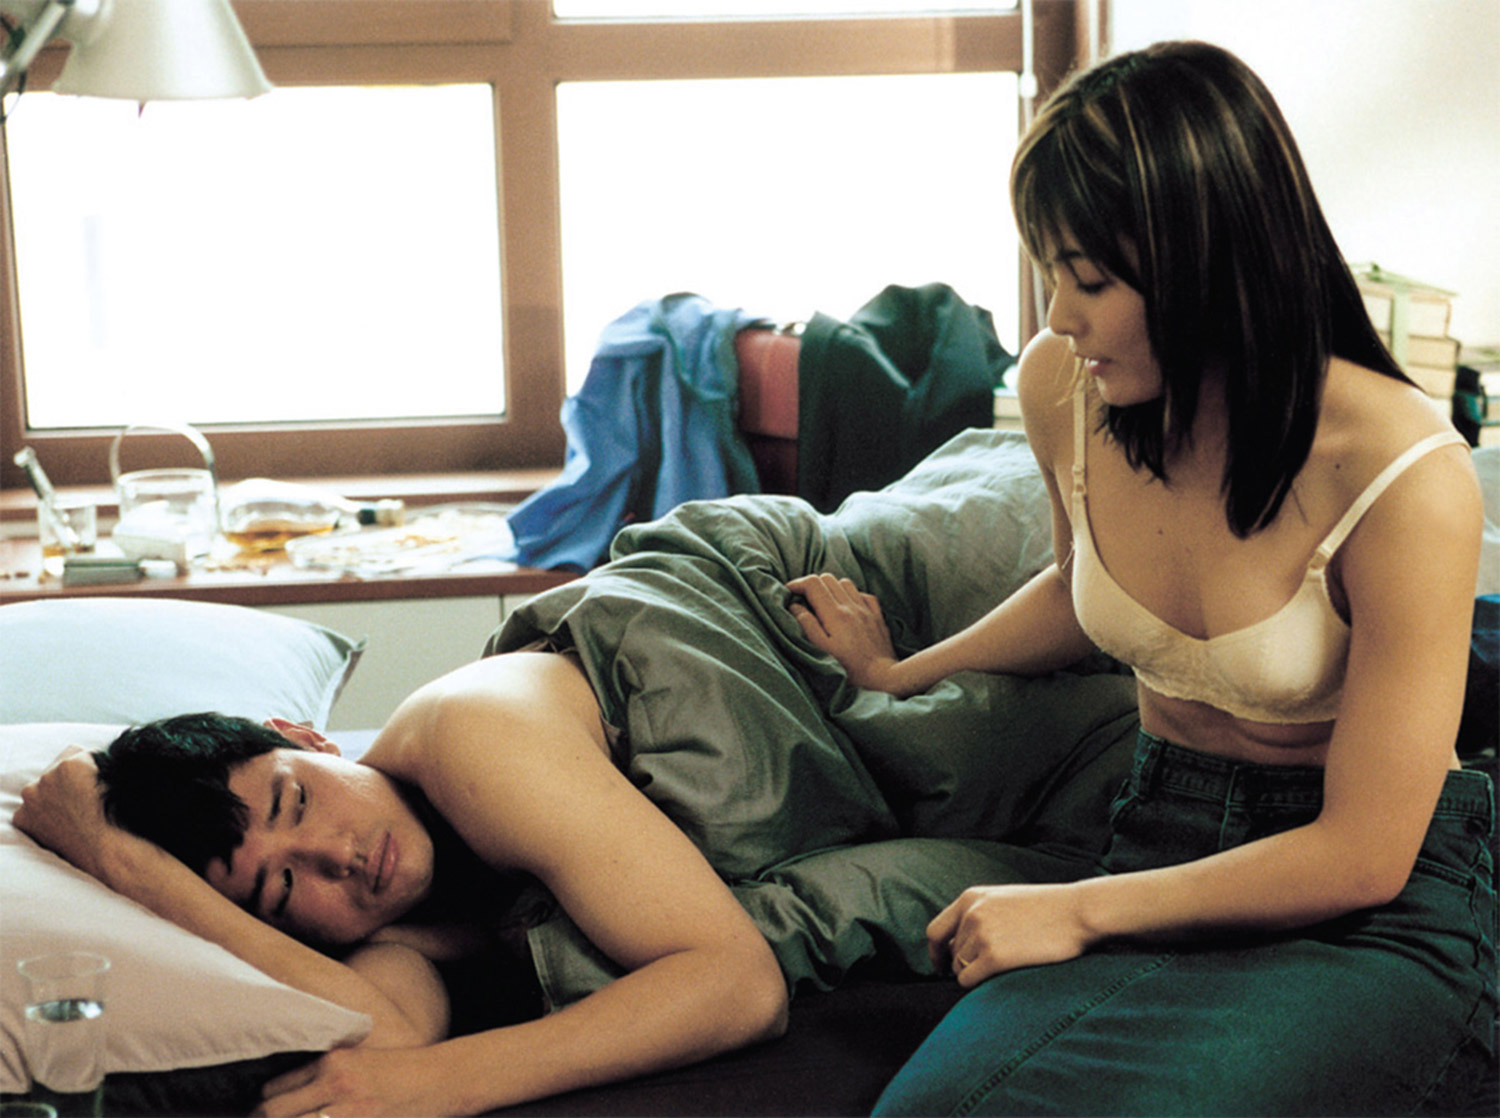 Dark Korean Erotic Films - A Good Lawyer's Wife, unhappy in bed